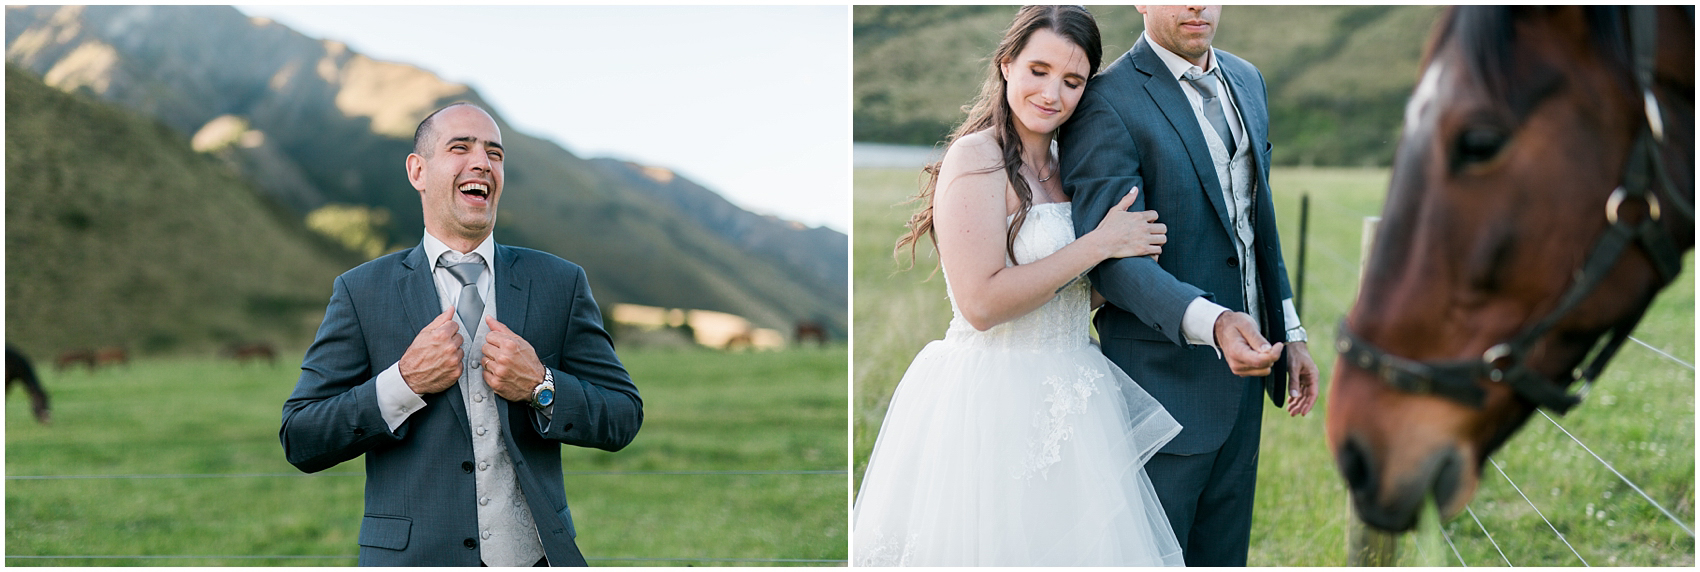 Queenstown New Zealand Wedding Photographer Bruna Fabricio Smetona Photo-0065.jpg